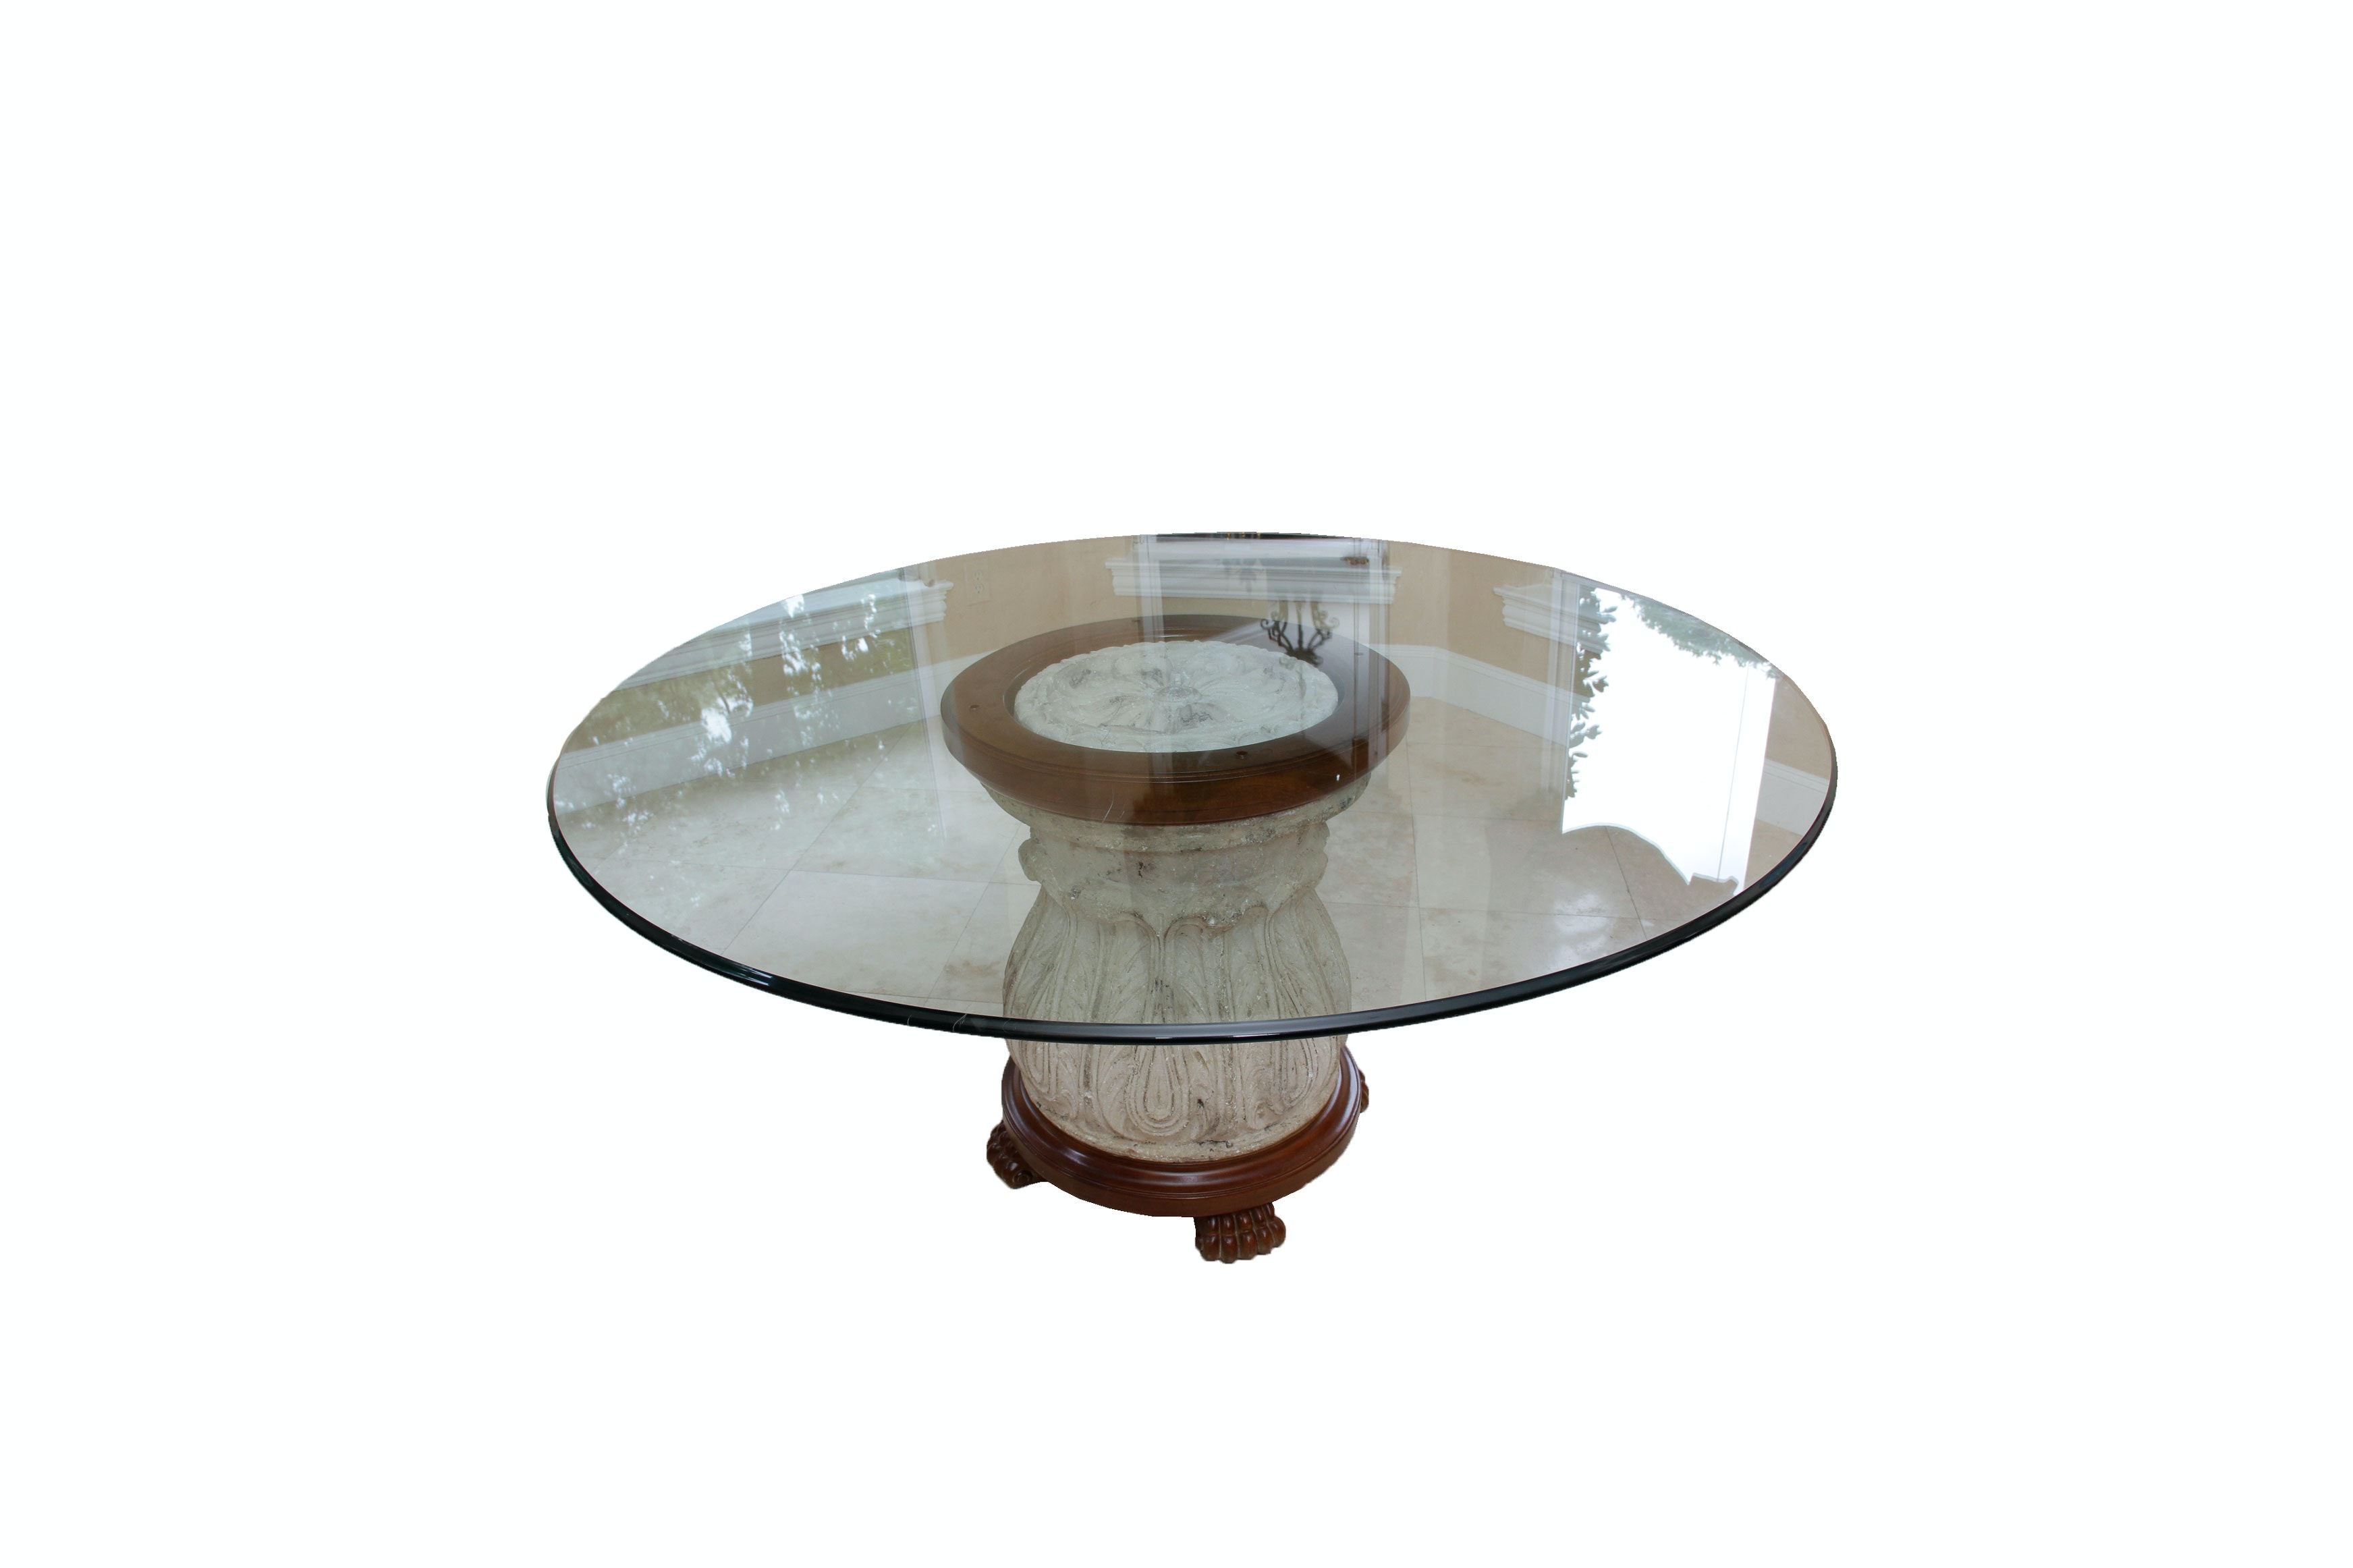 Round Glass Table with Stone Base by Thomasville